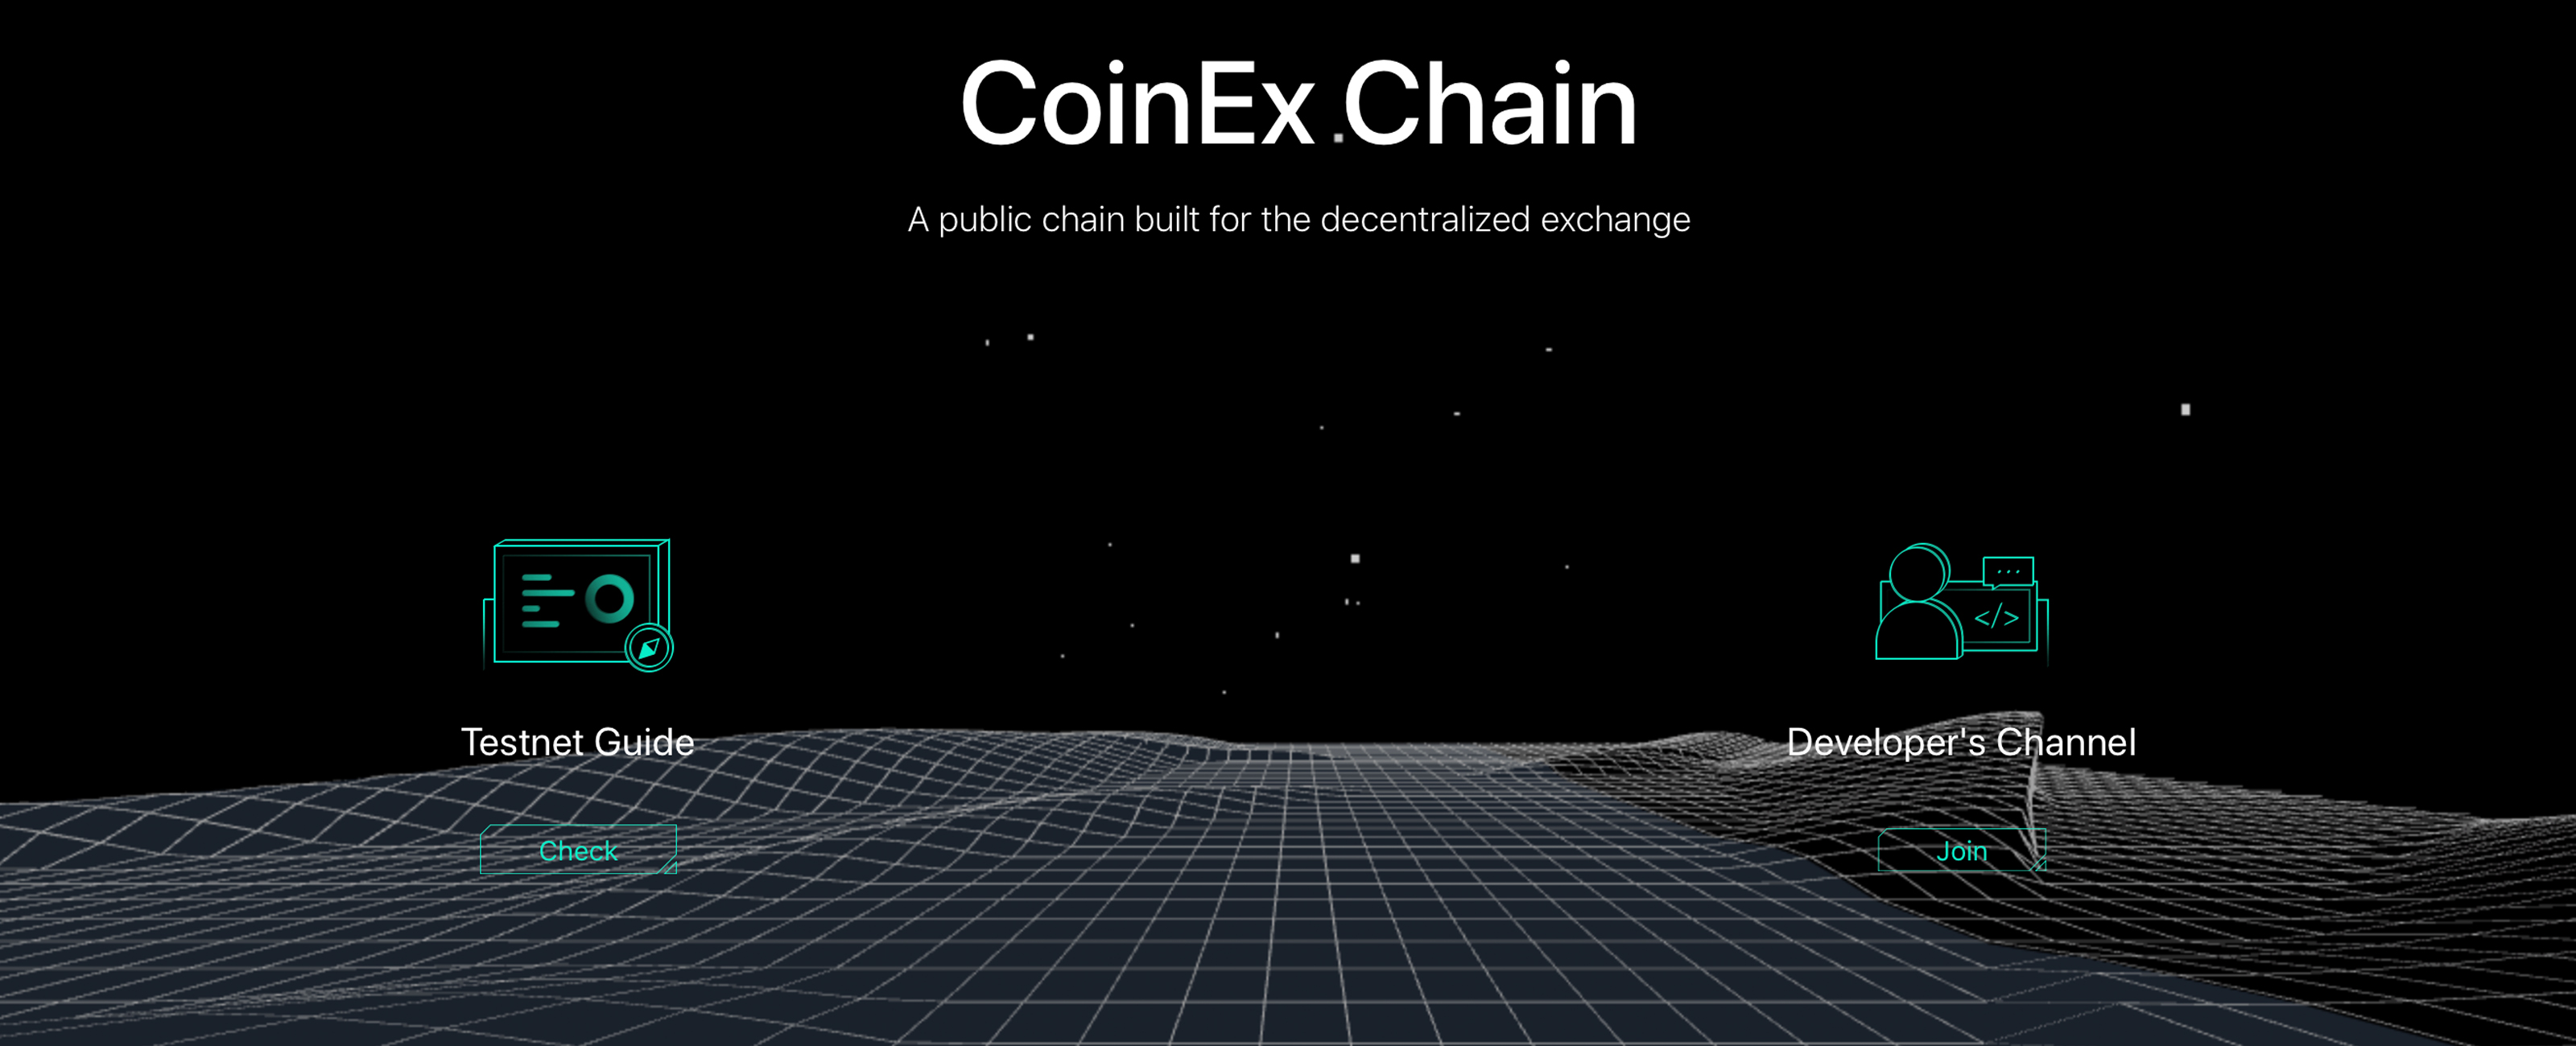 Bitcoin.com Joins the Coinex Chain Pre-Election Node Process